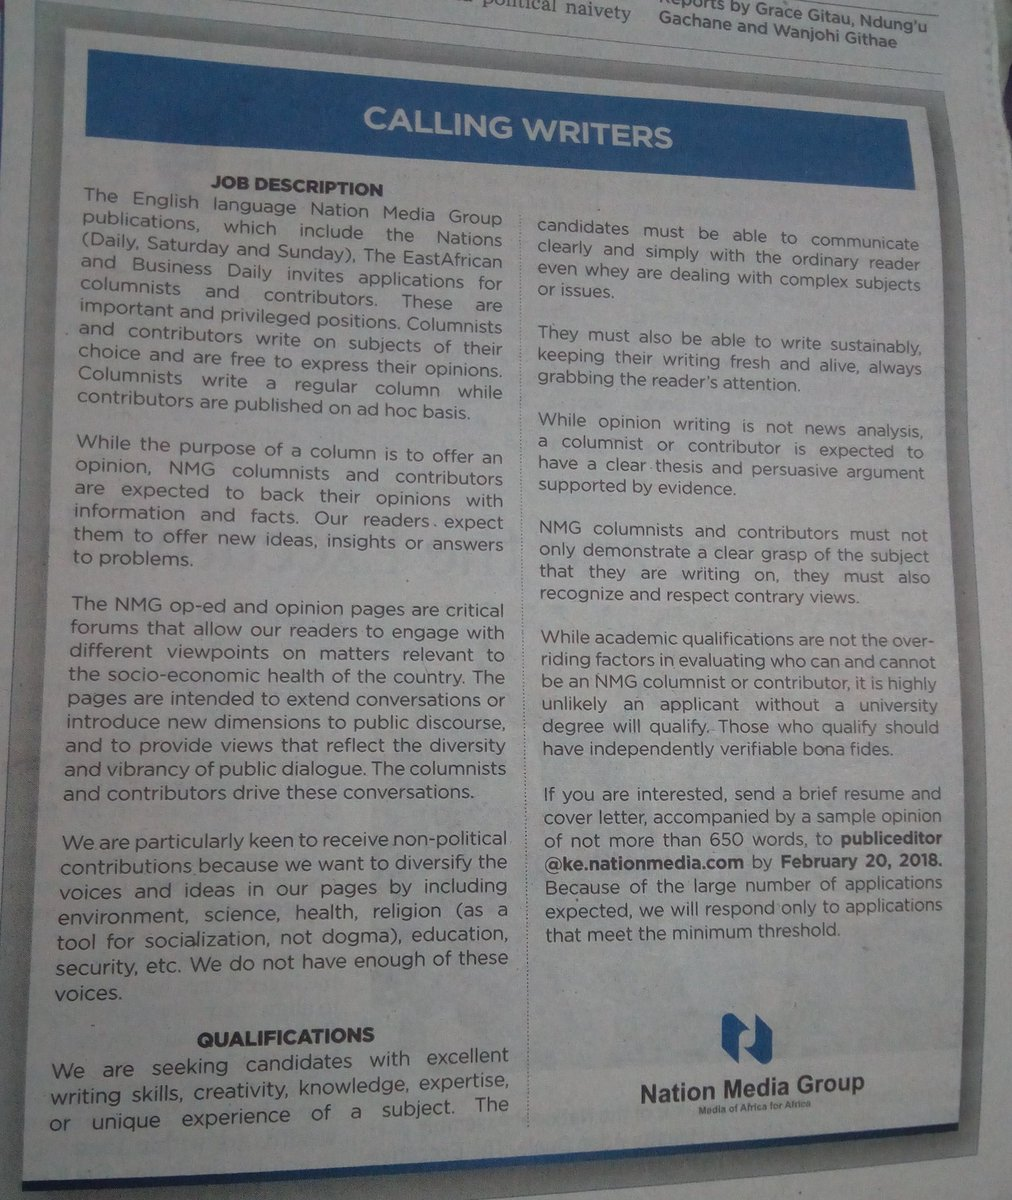 Nmg Are Looking For Non Political Writers Youth Village Kenya Contributors Below Is The Detailed Description And Application Job